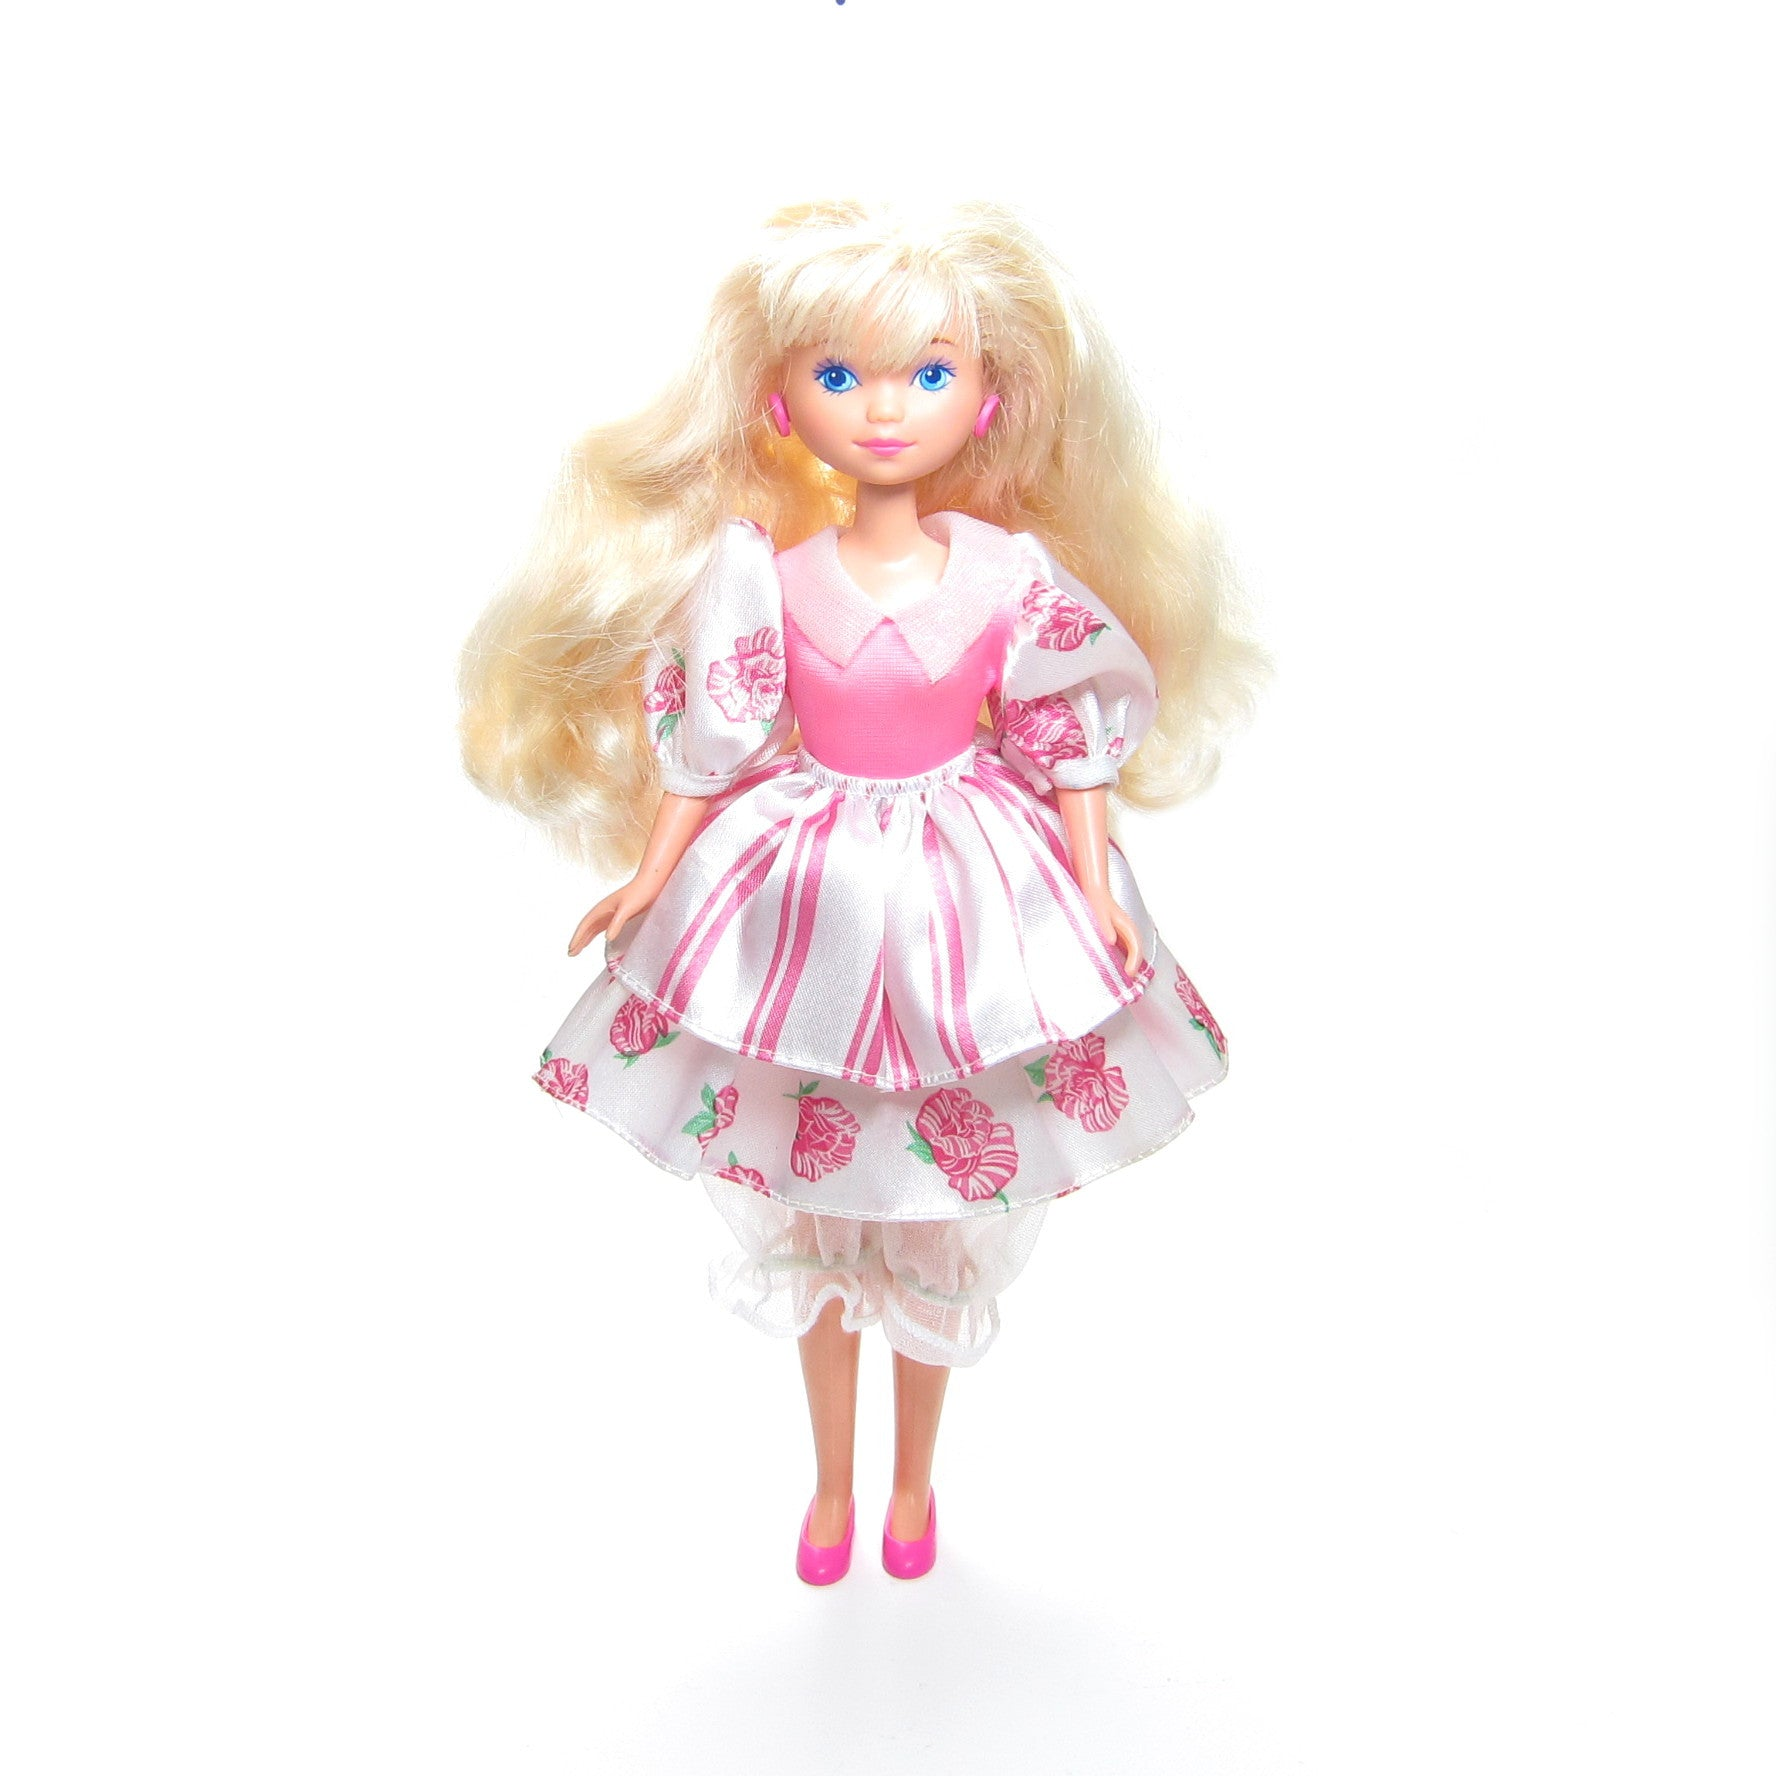 Peppermint Rose doll with outfit and shoes